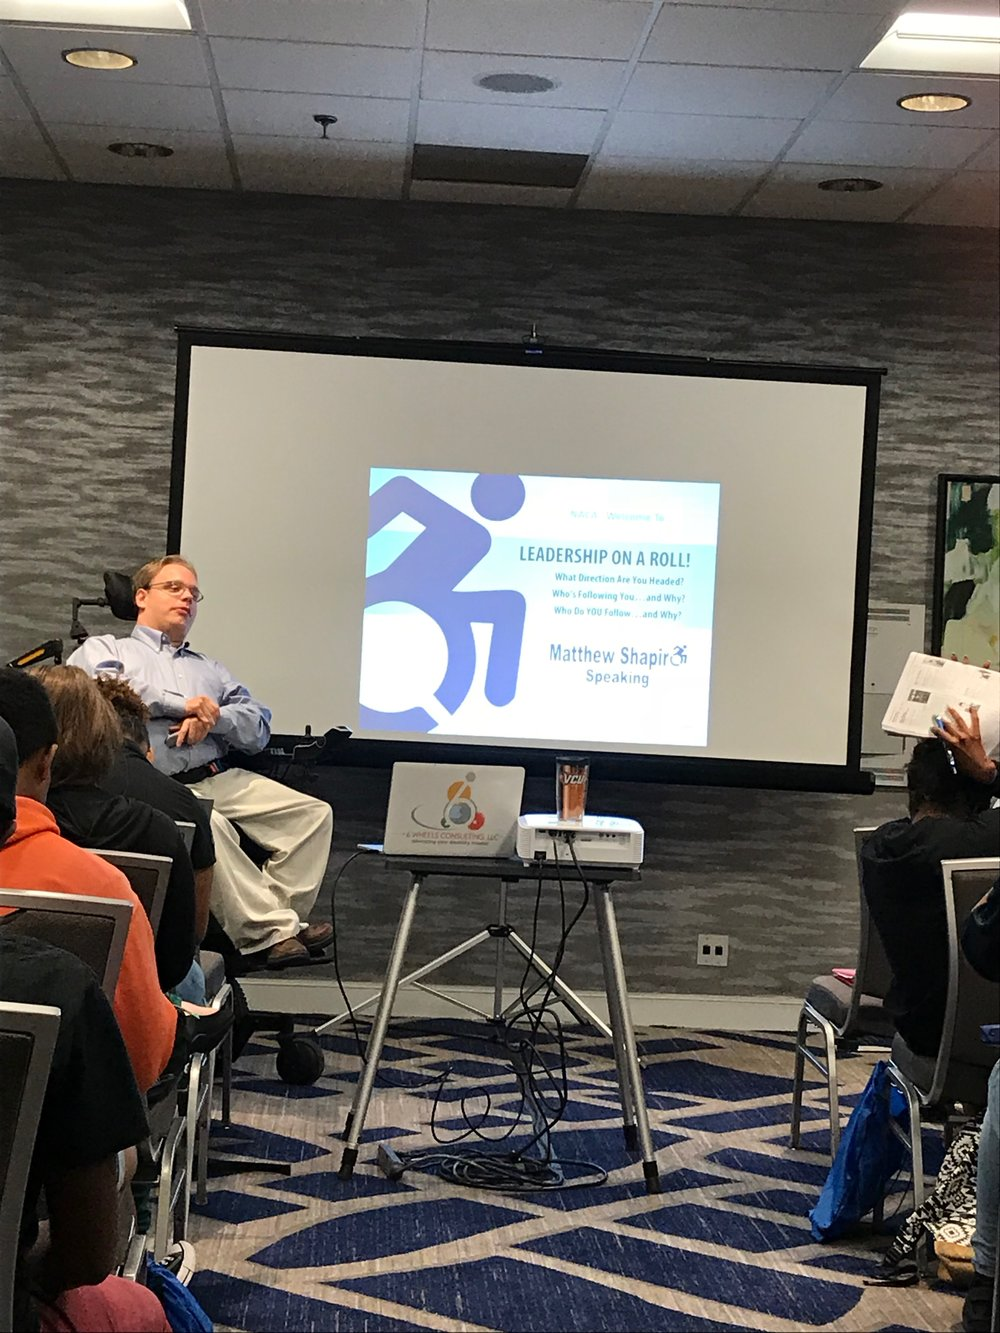 PHOTO: Matthew, sitting in his wheelchair, In khaki pants and a button-down shirt, In front of a projector screen getting ready to begin his Leadership on a roll program in his Ed session Atlanta.